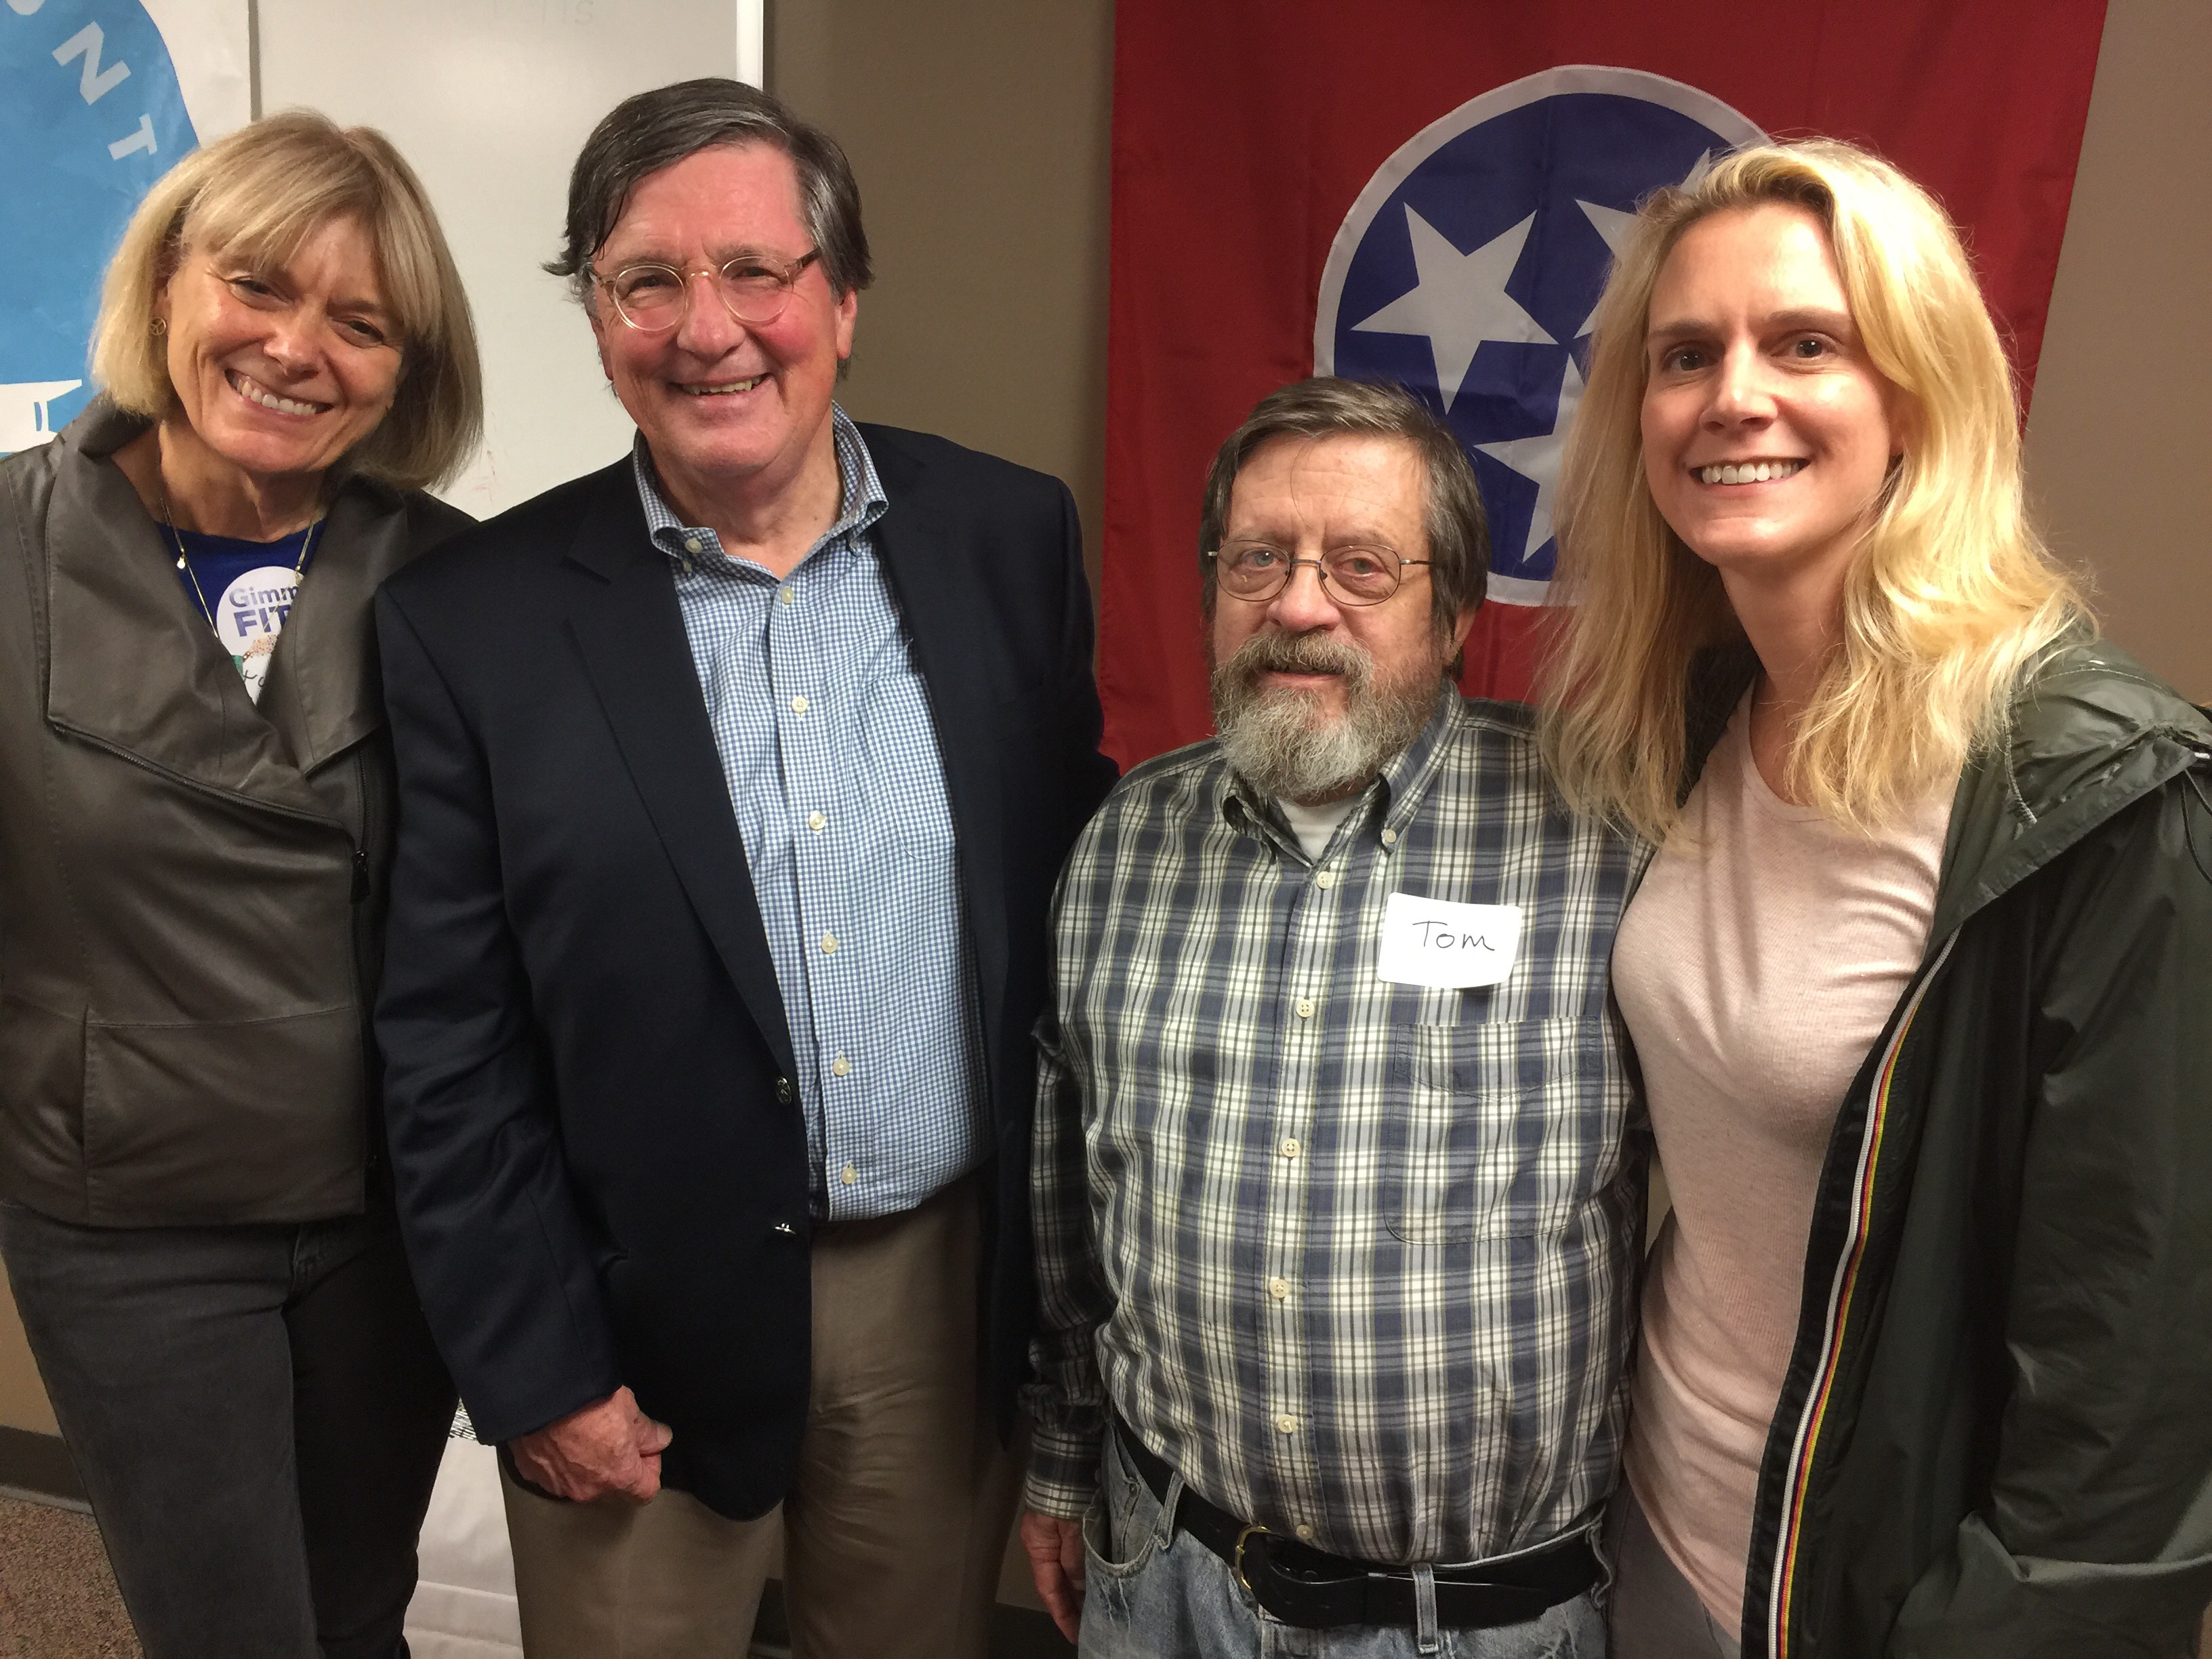 (L-R) Pam Kidd welcomed governor hopeful Craig Fitzhue to Nashville's L Club as Tom Sterritt and Keri Cannon look on. - photos by Dru Smith